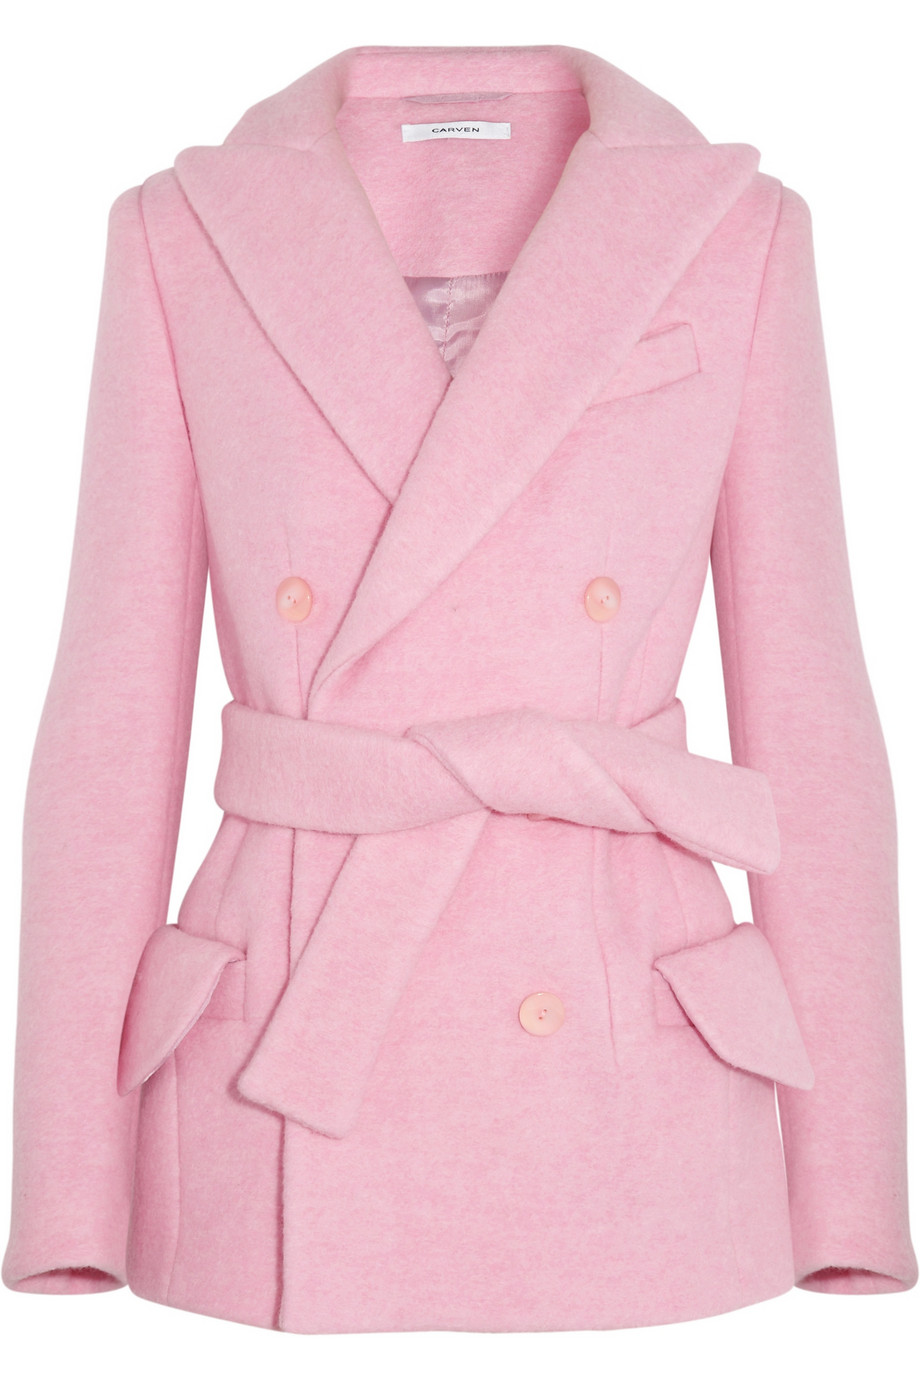 Carven Doublebreasted Brushed Woolblend Coat in Pink | Lyst